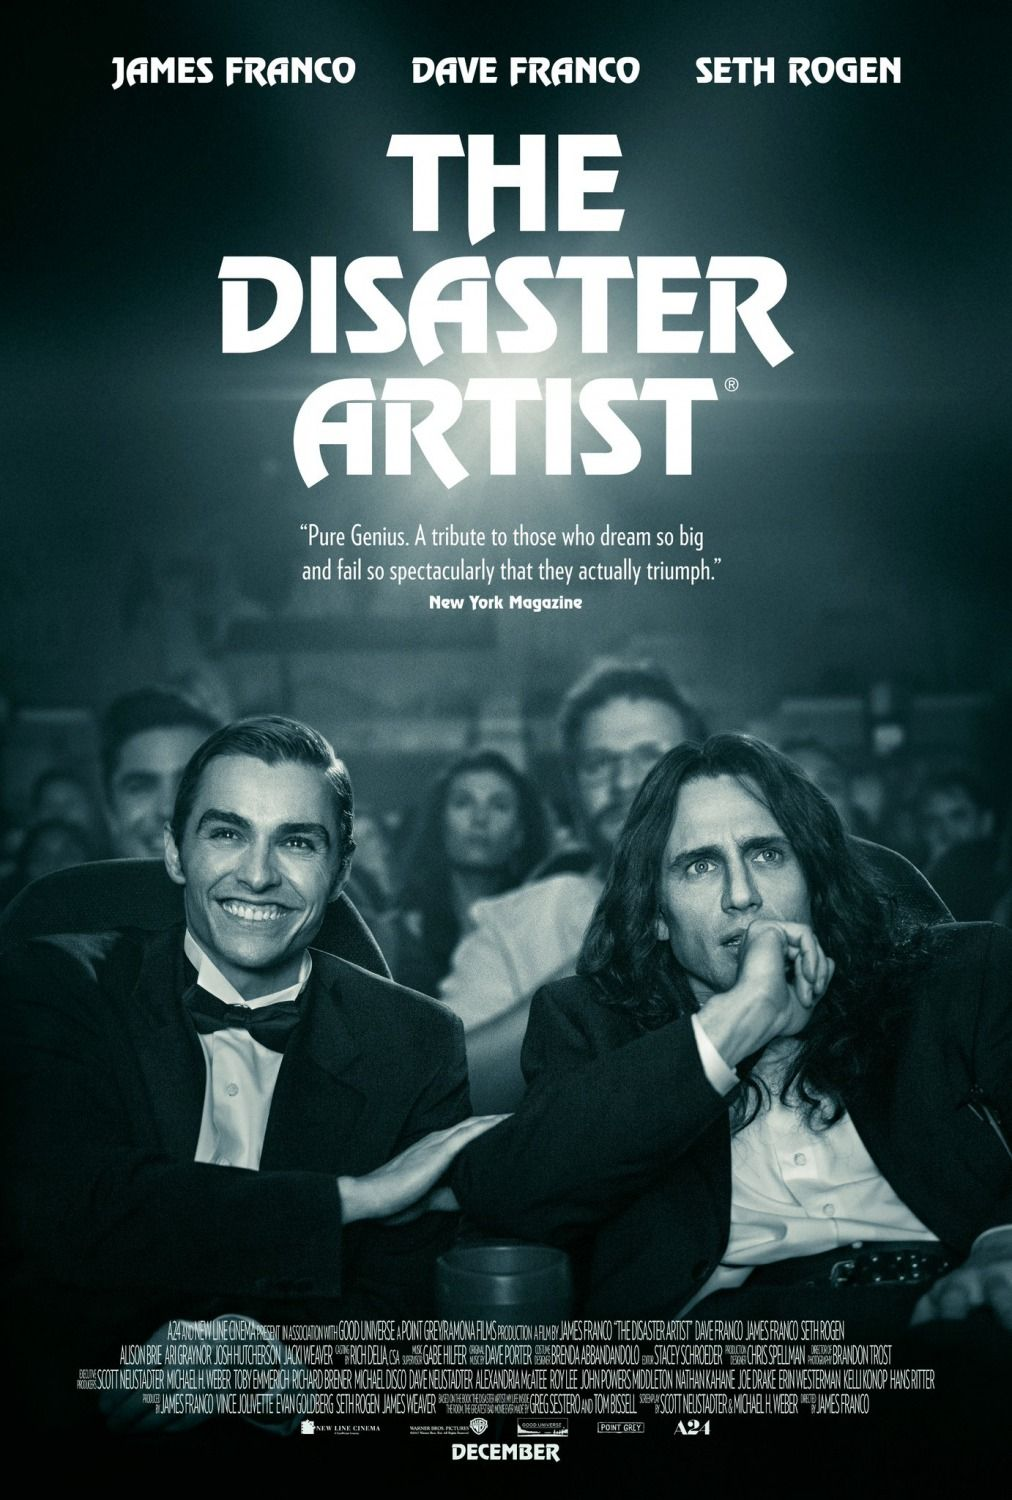 The Disaster Artist Movie Review Starring James Franco Dave Franco Seth Rogen Alison Brie Paul The Artist Movie Full Movies Online Free Free Movies Online